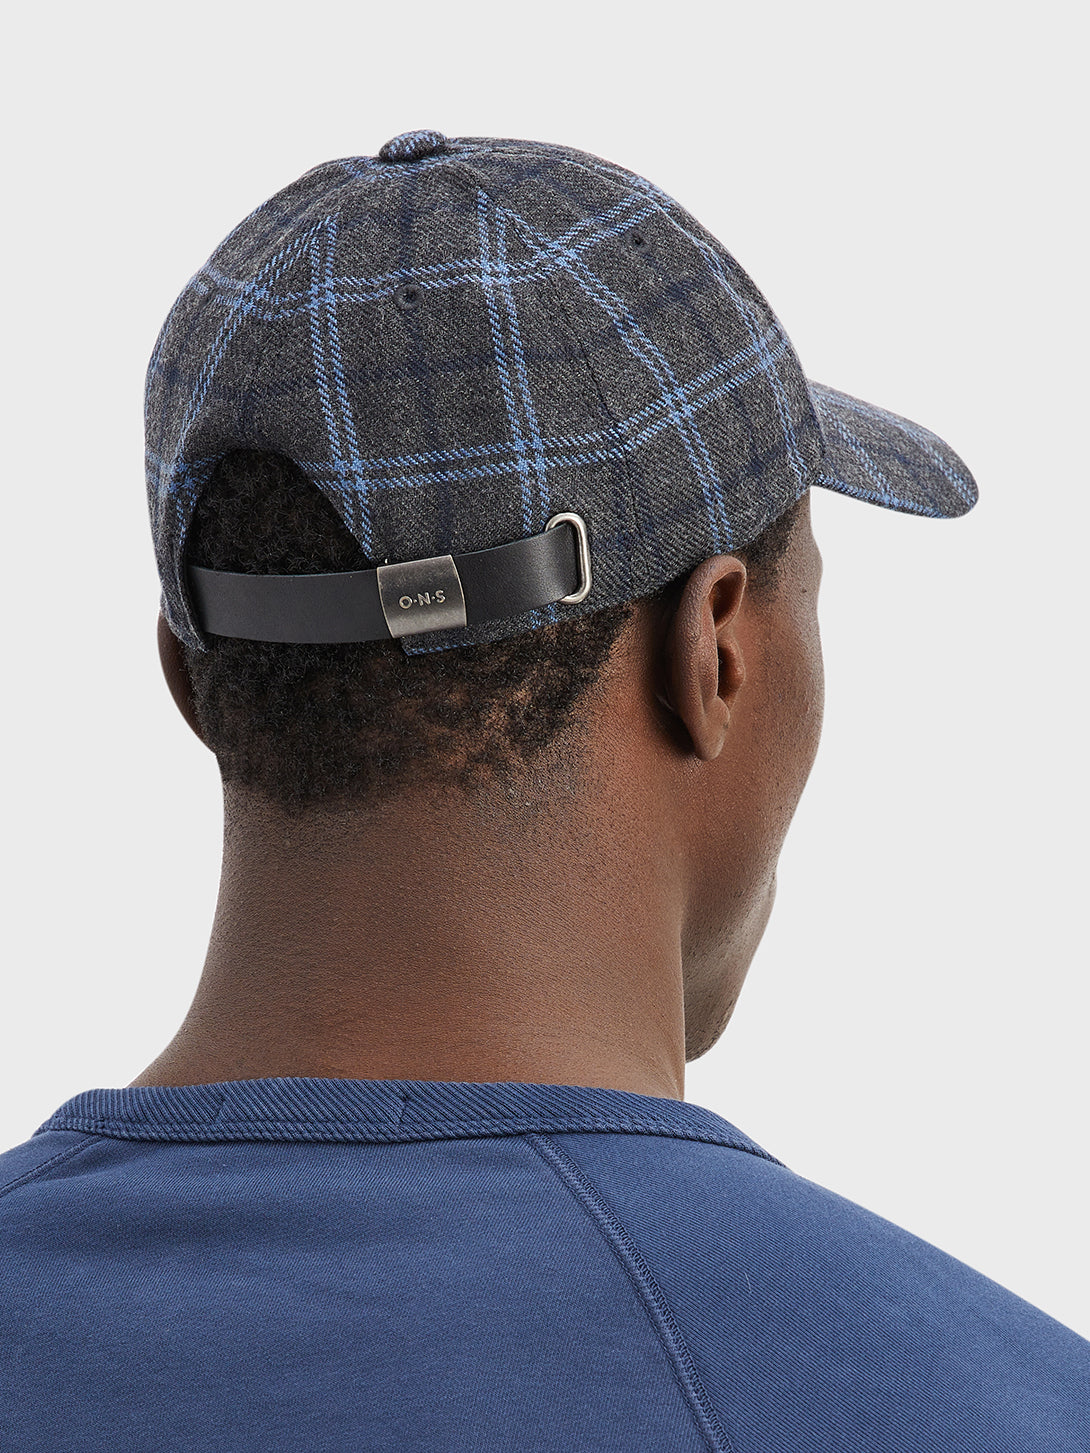 black friday deals ONS Clothing Men's hat cap in DK. GREY CHECK DARREL CAP